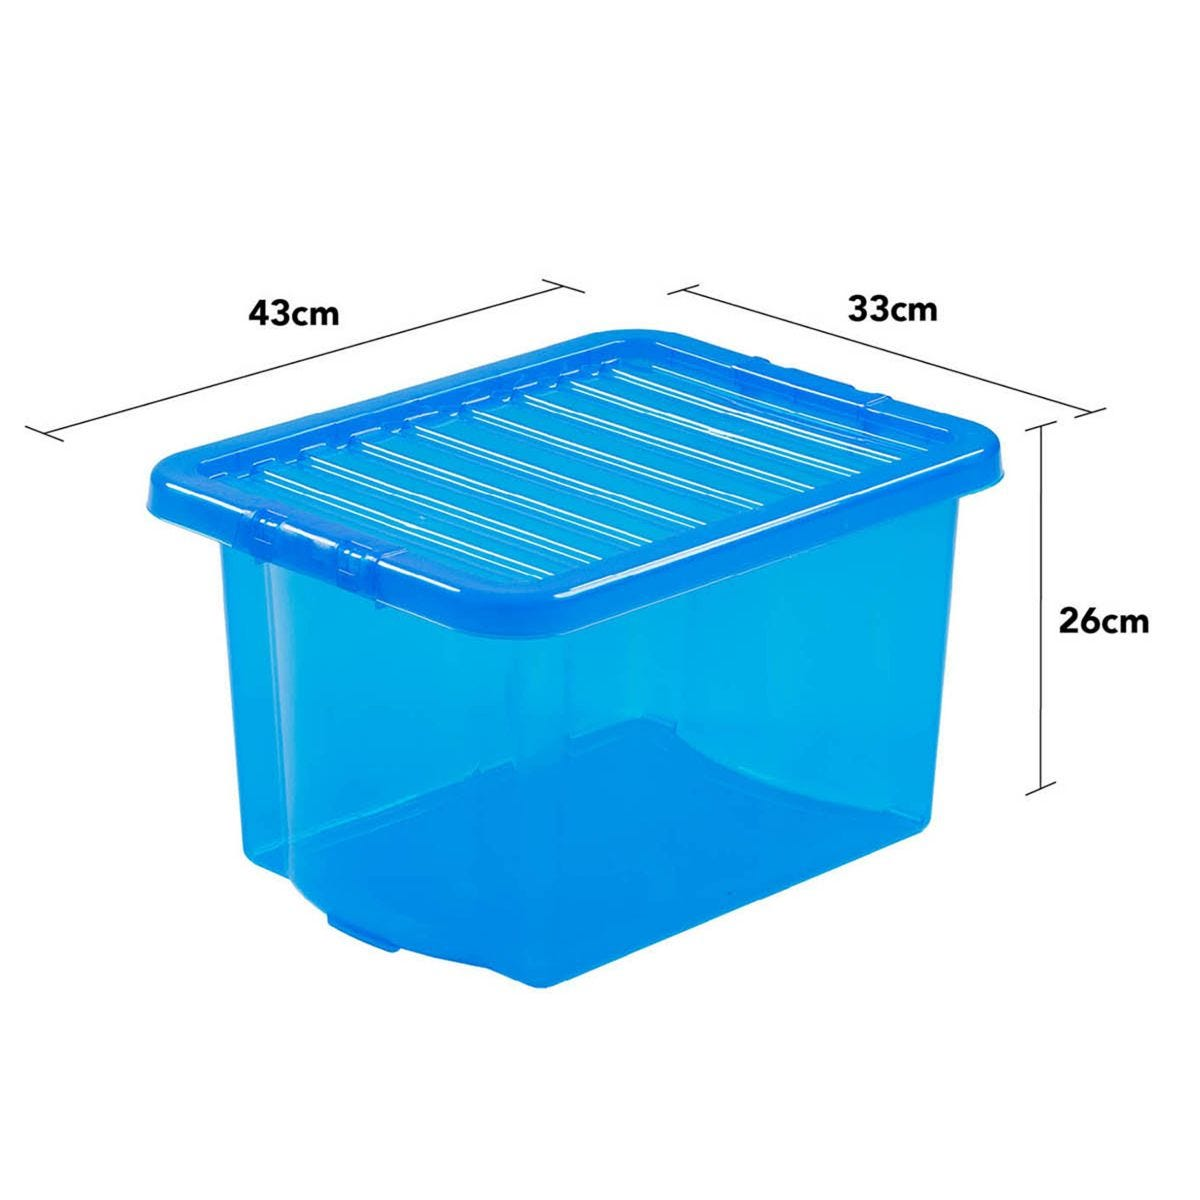 Wham Crystal Blue Storage Box with Lid 24L - Set of 5